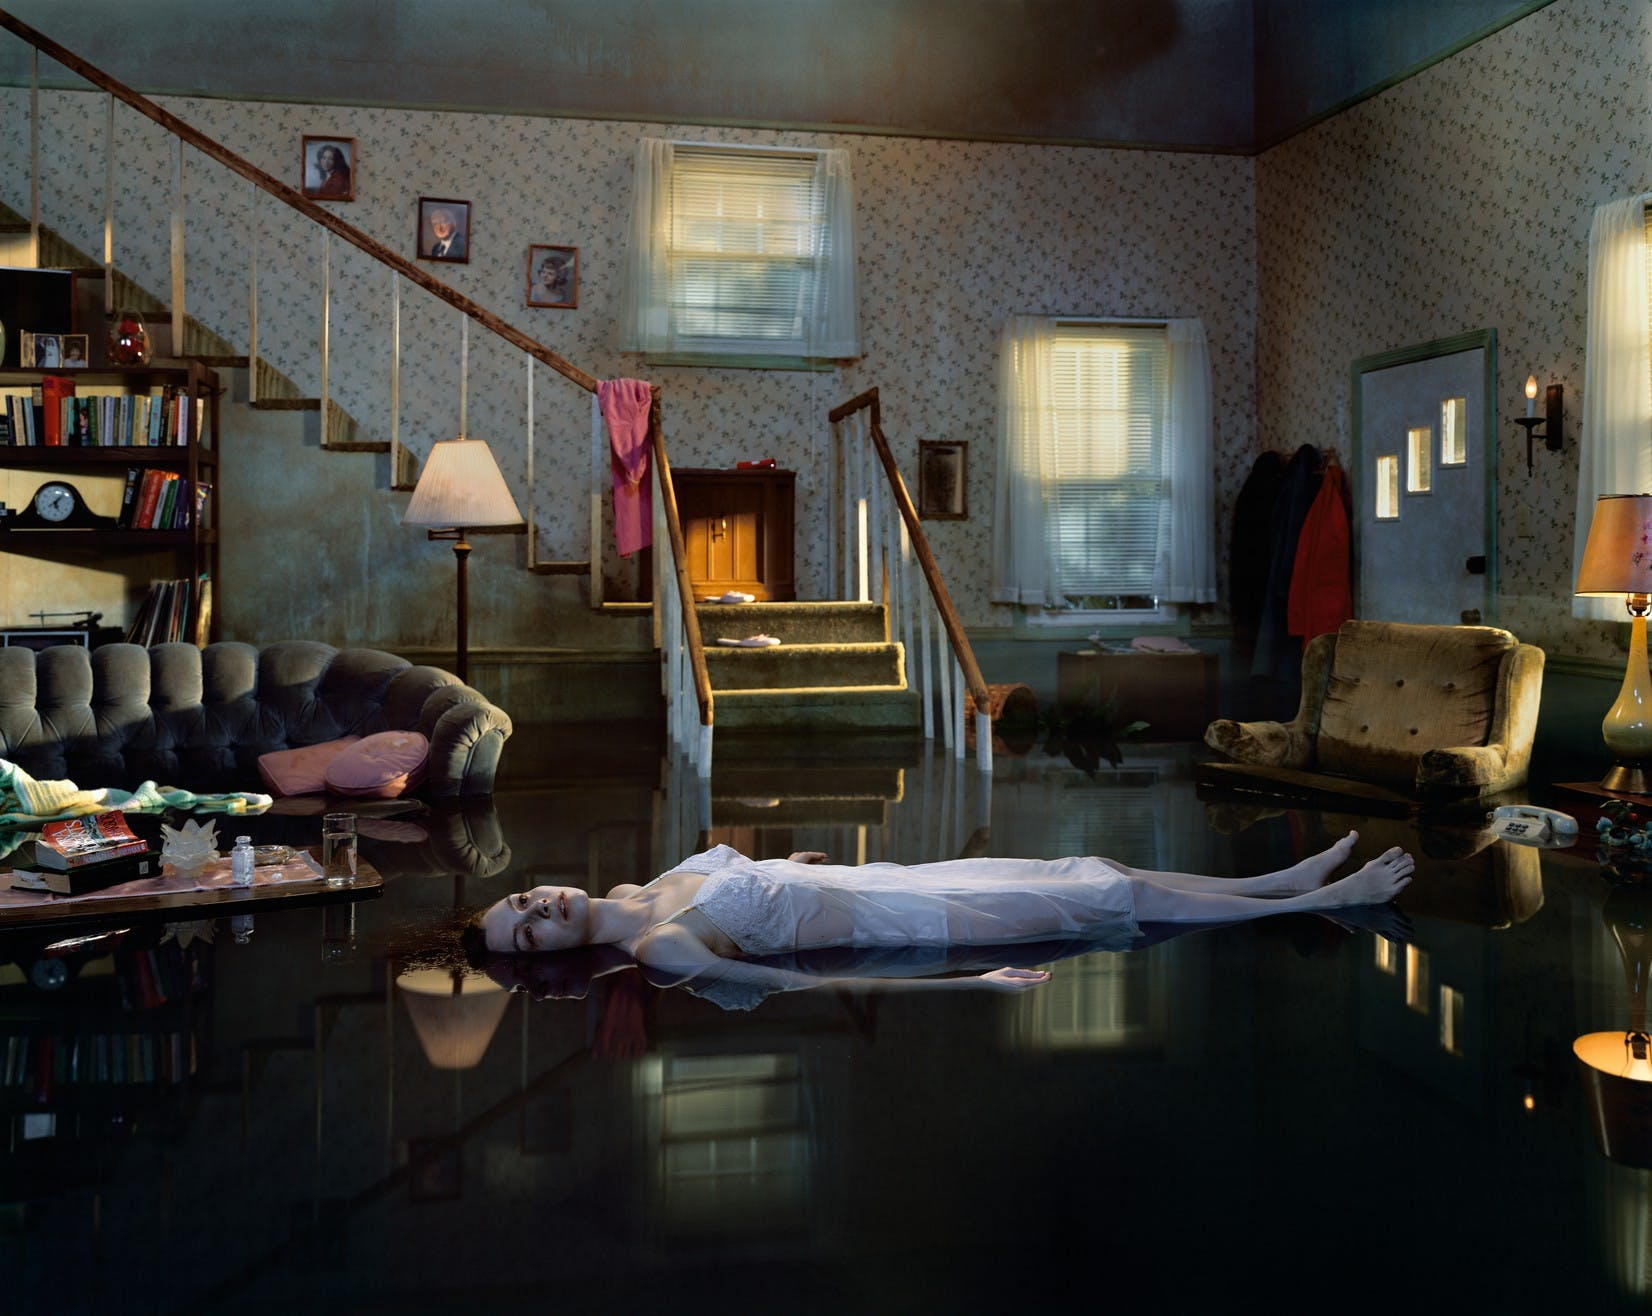 GREGORY CREWDSON: DREAMLIKE SCENES INFUSED WITH MYSTERY AND SUSPENSE